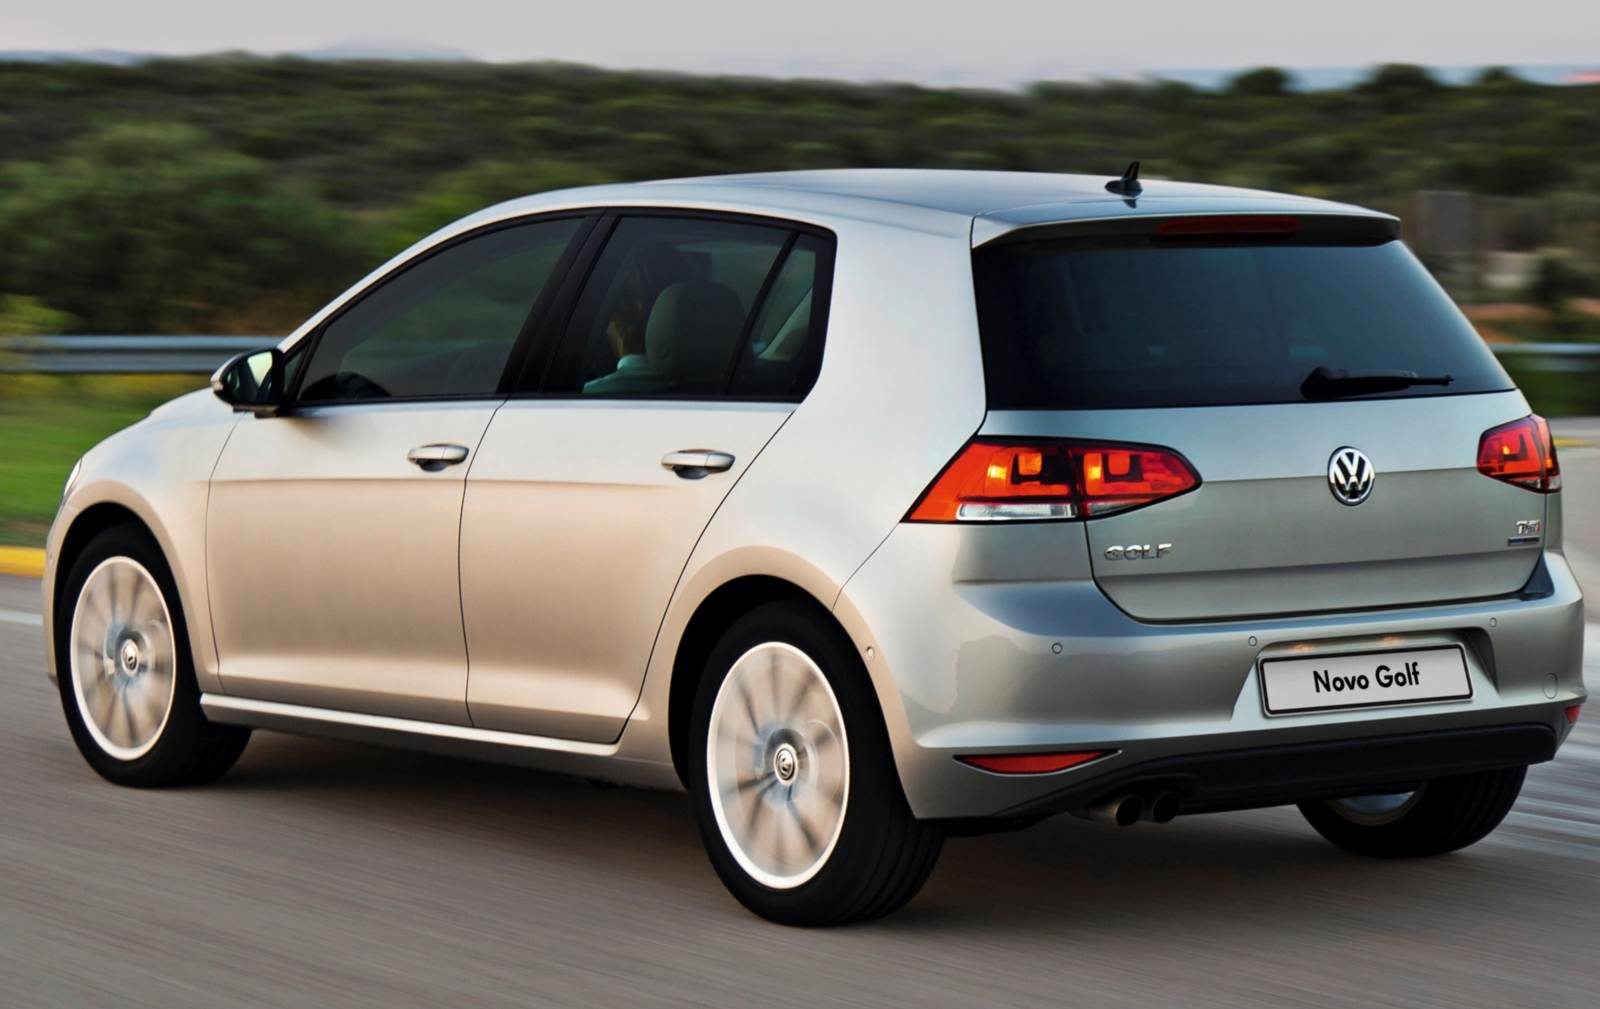 vw lan a golf comfortline 2015 com pre o r reais car blog br. Black Bedroom Furniture Sets. Home Design Ideas